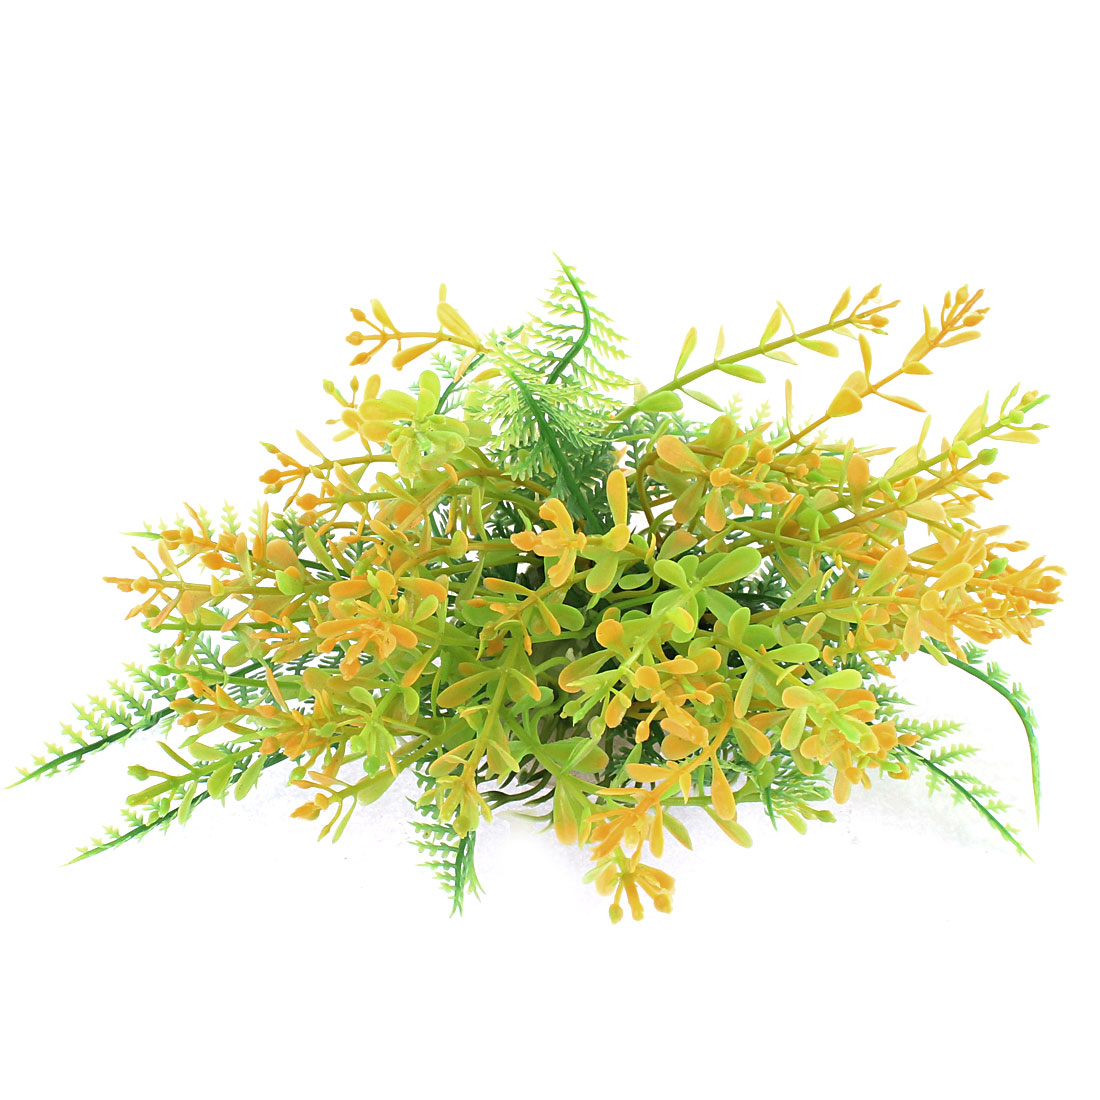 Aquarium Landscaping Manmade Green Yellow Plastic Plant Water Grass 9cm Height